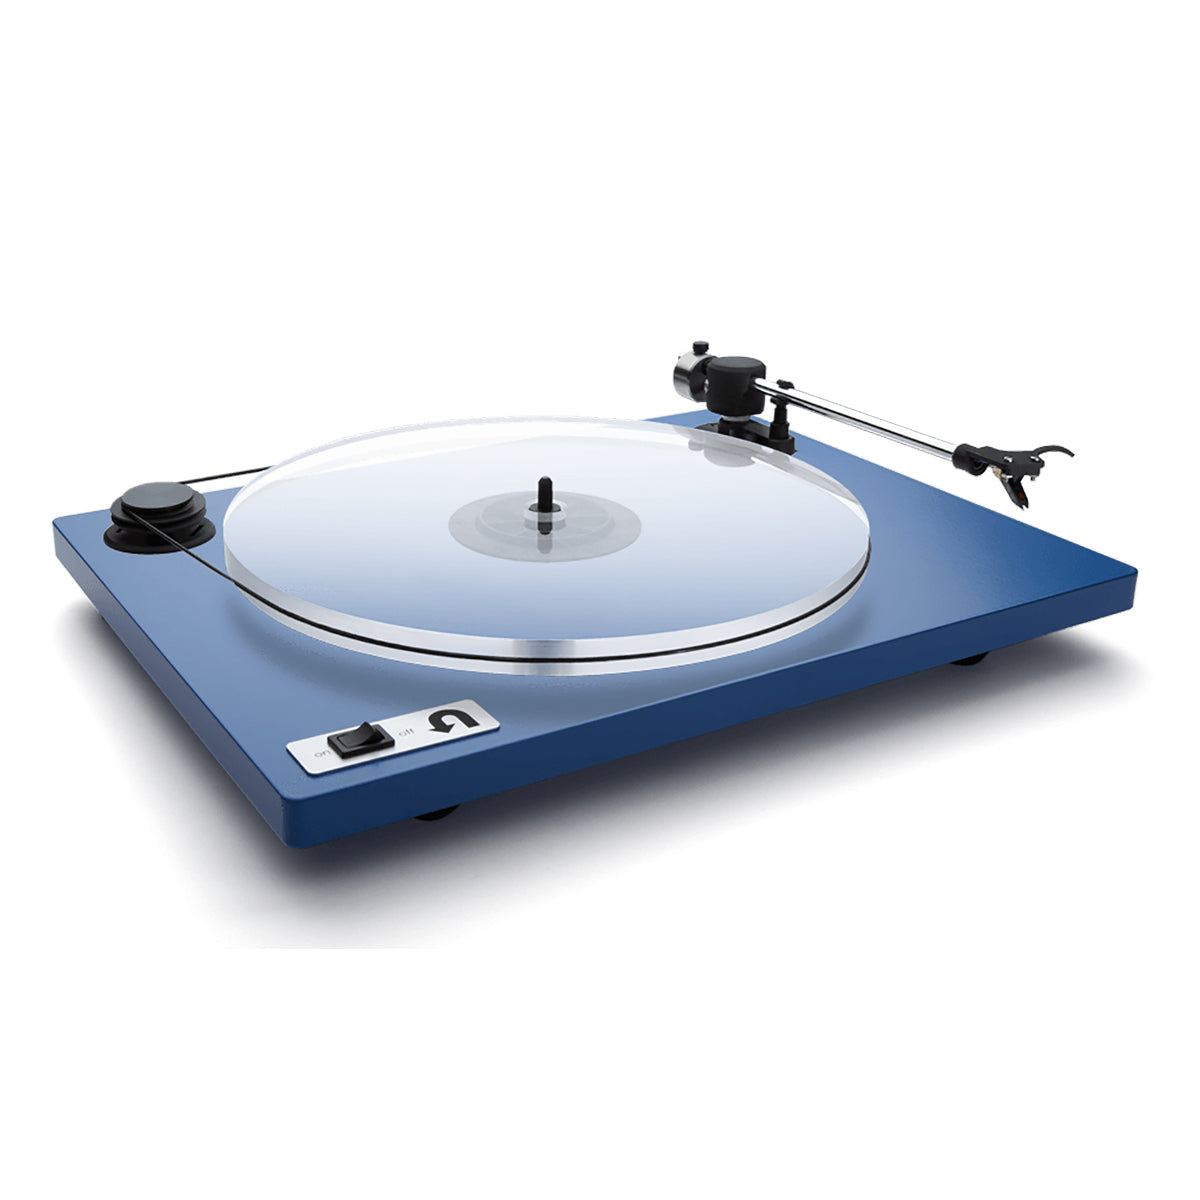 U-Turn Audio: Orbit Plus Turntable w/ Built In Preamp (OM5e) - Blue